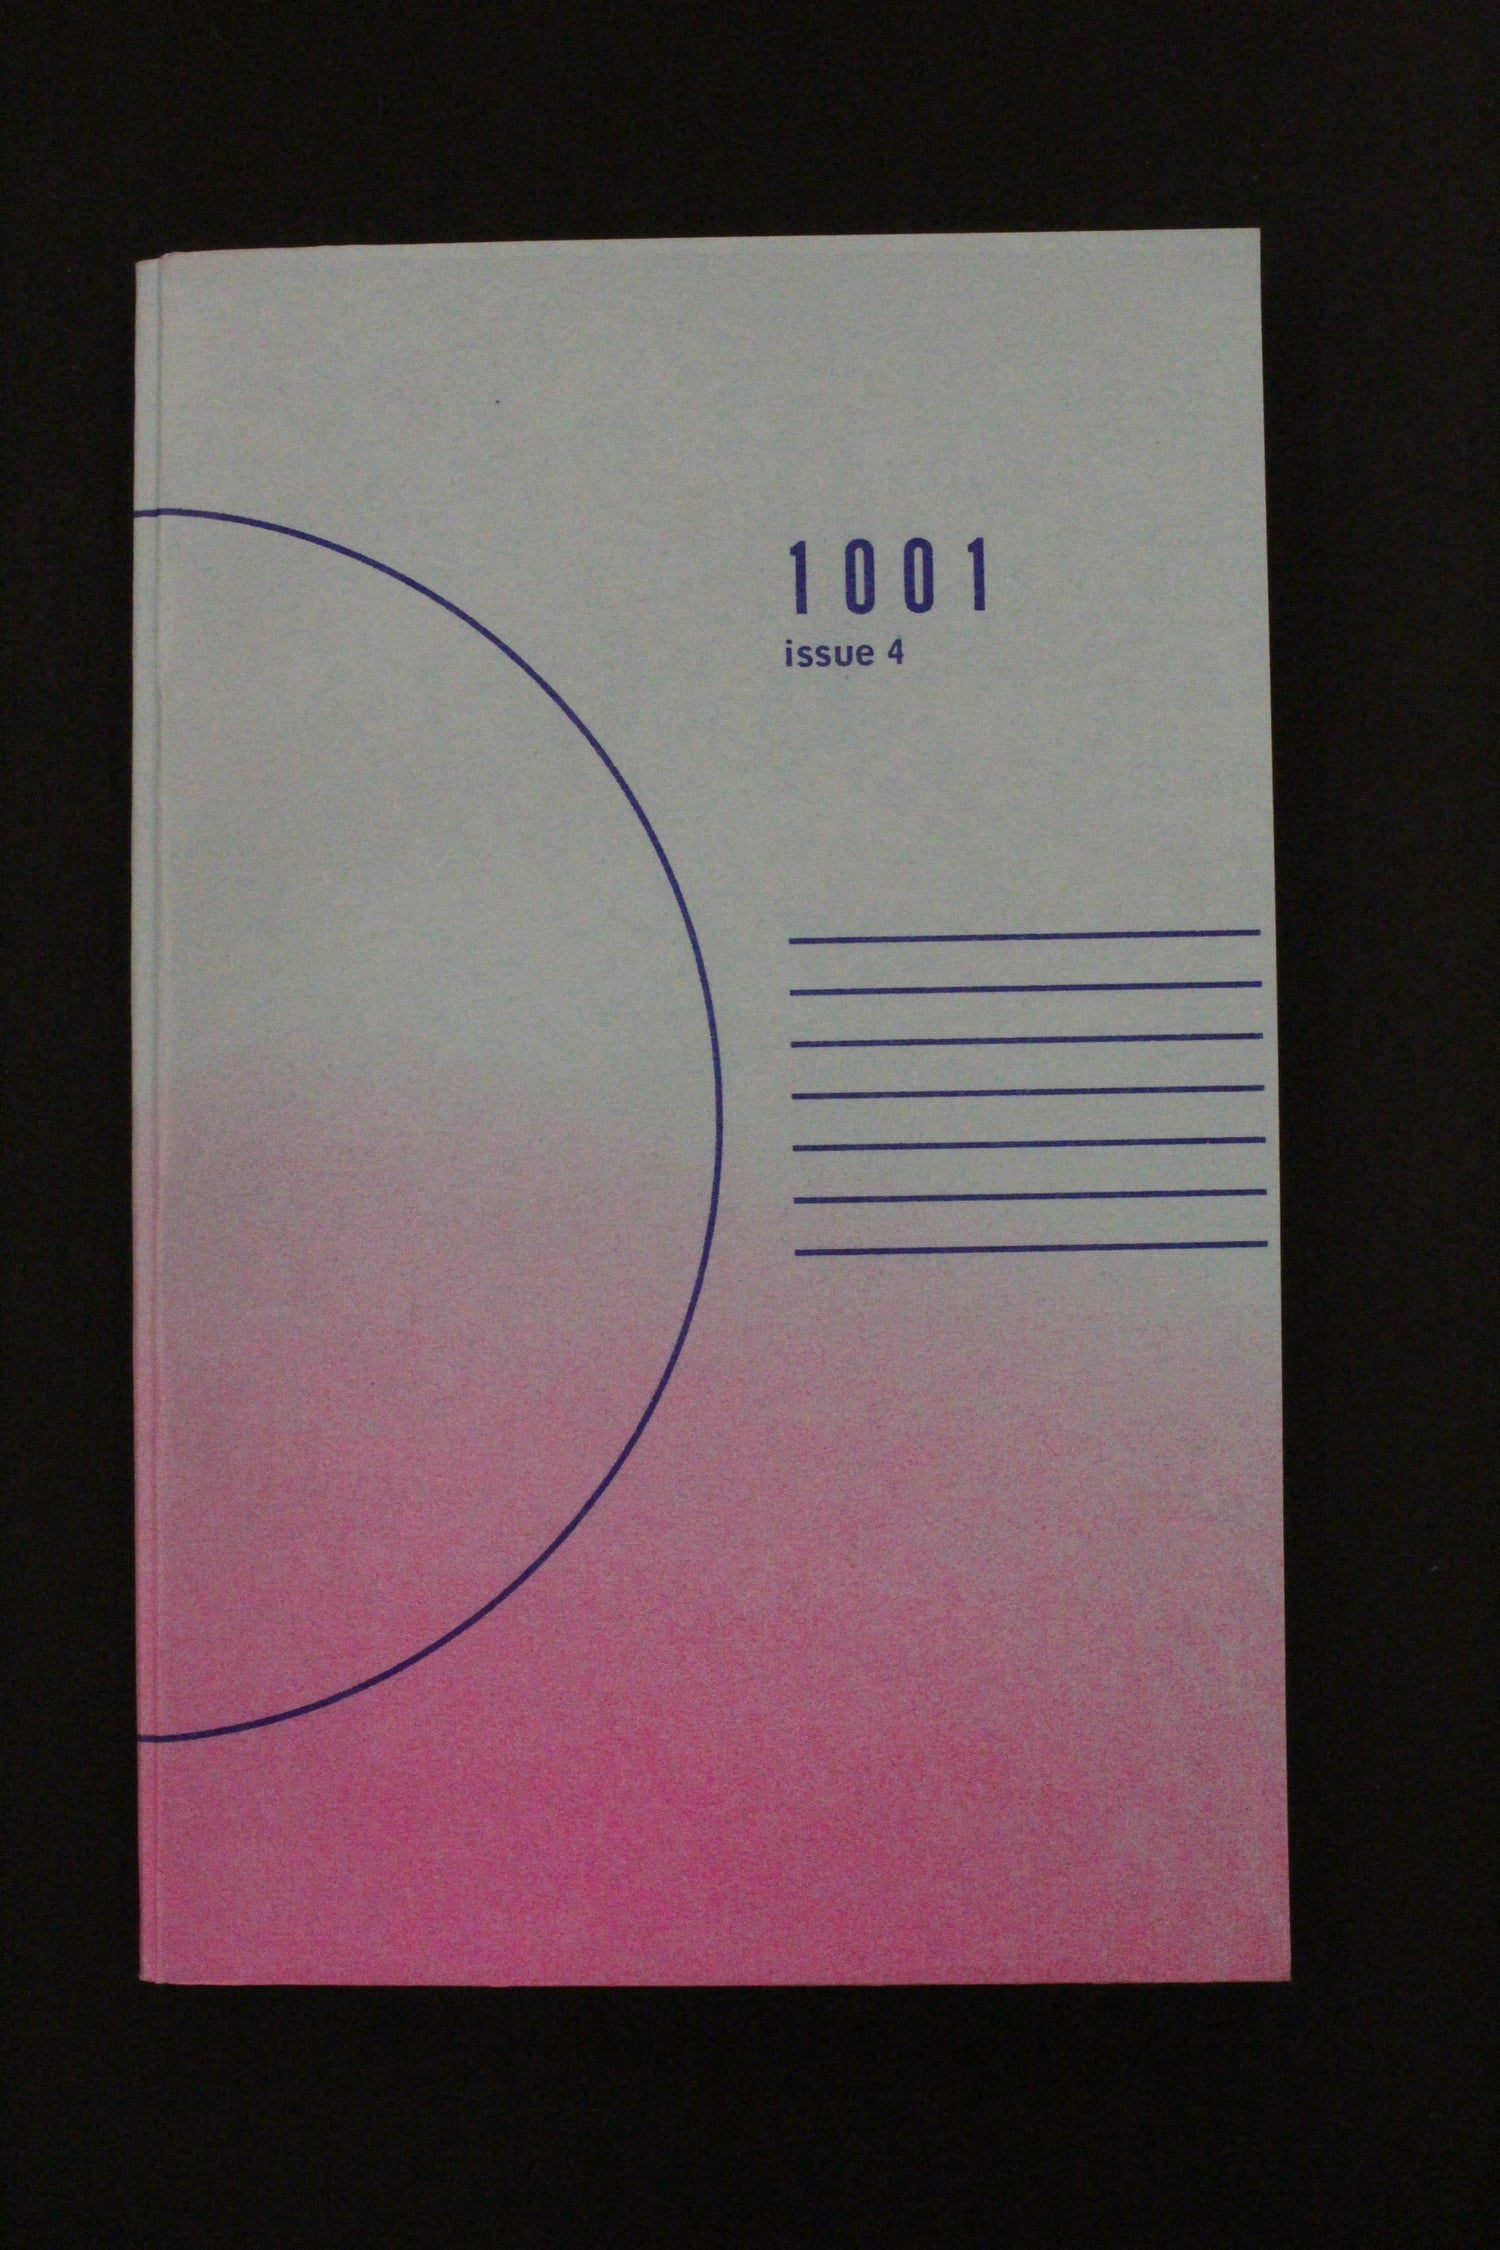 Image of 1001 Journal Issue 4